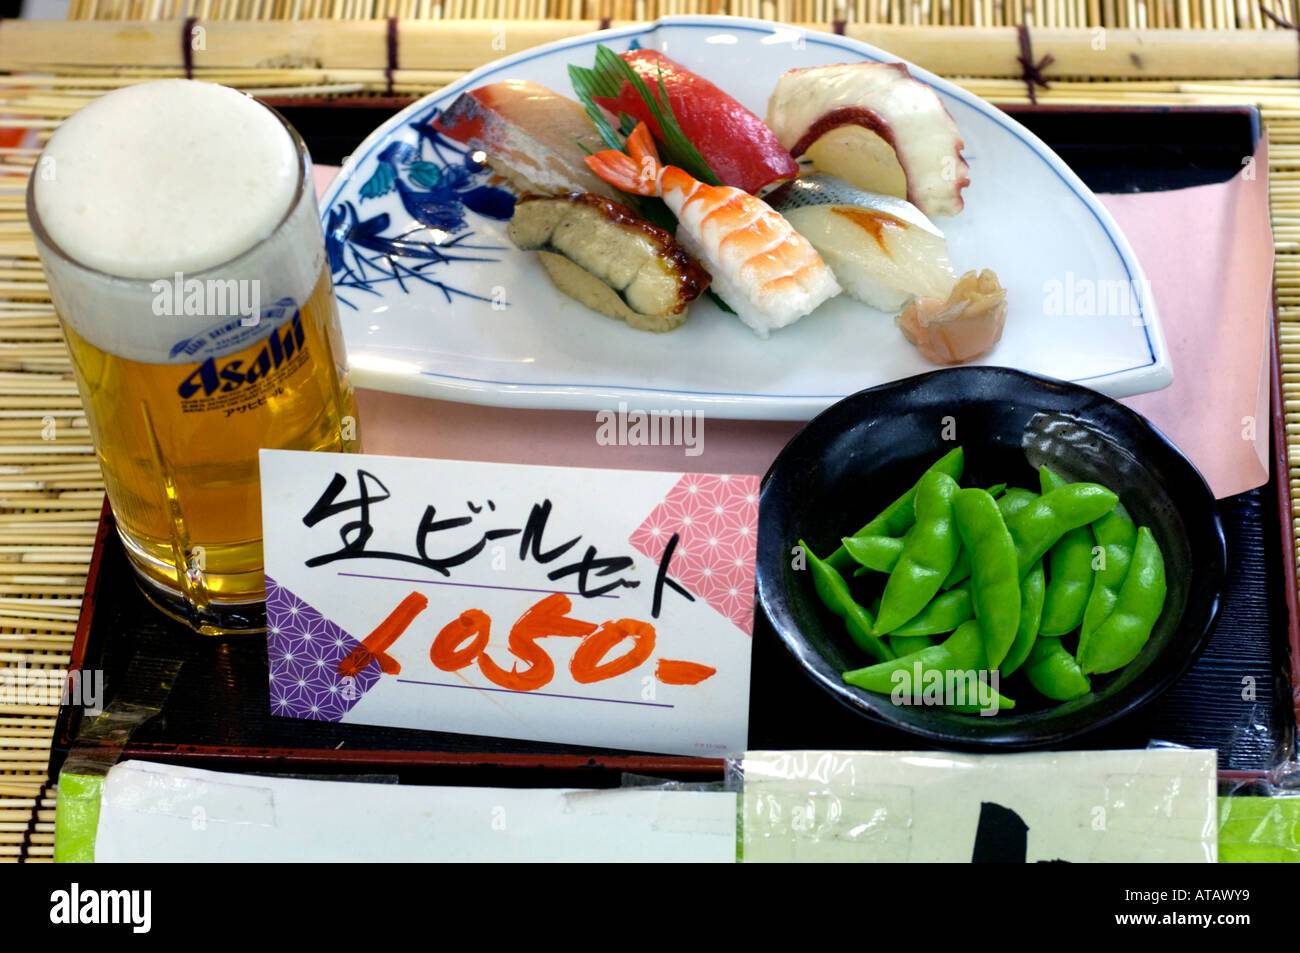 Plastic Food On Display At A Japanese Restaurant In Kyoto Station Stock Photo Alamy Click image for nutrition guide! alamy